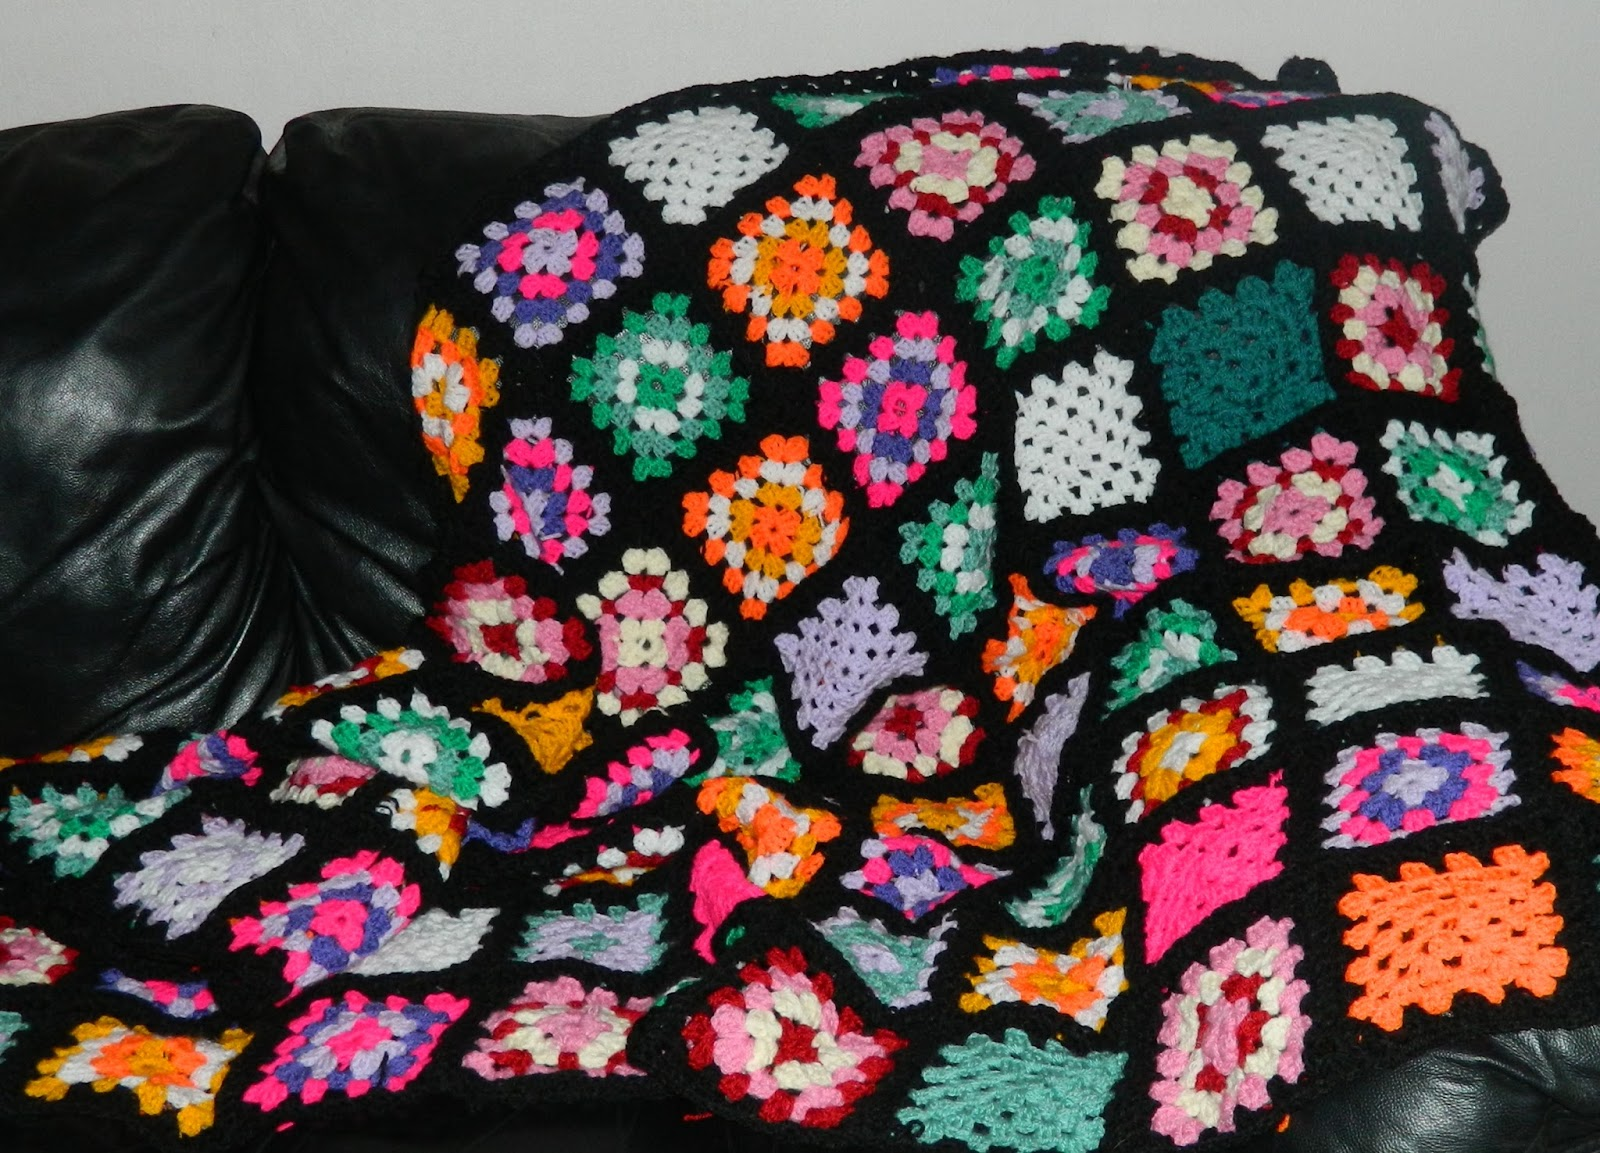 colour burst afghan throw, granny squares